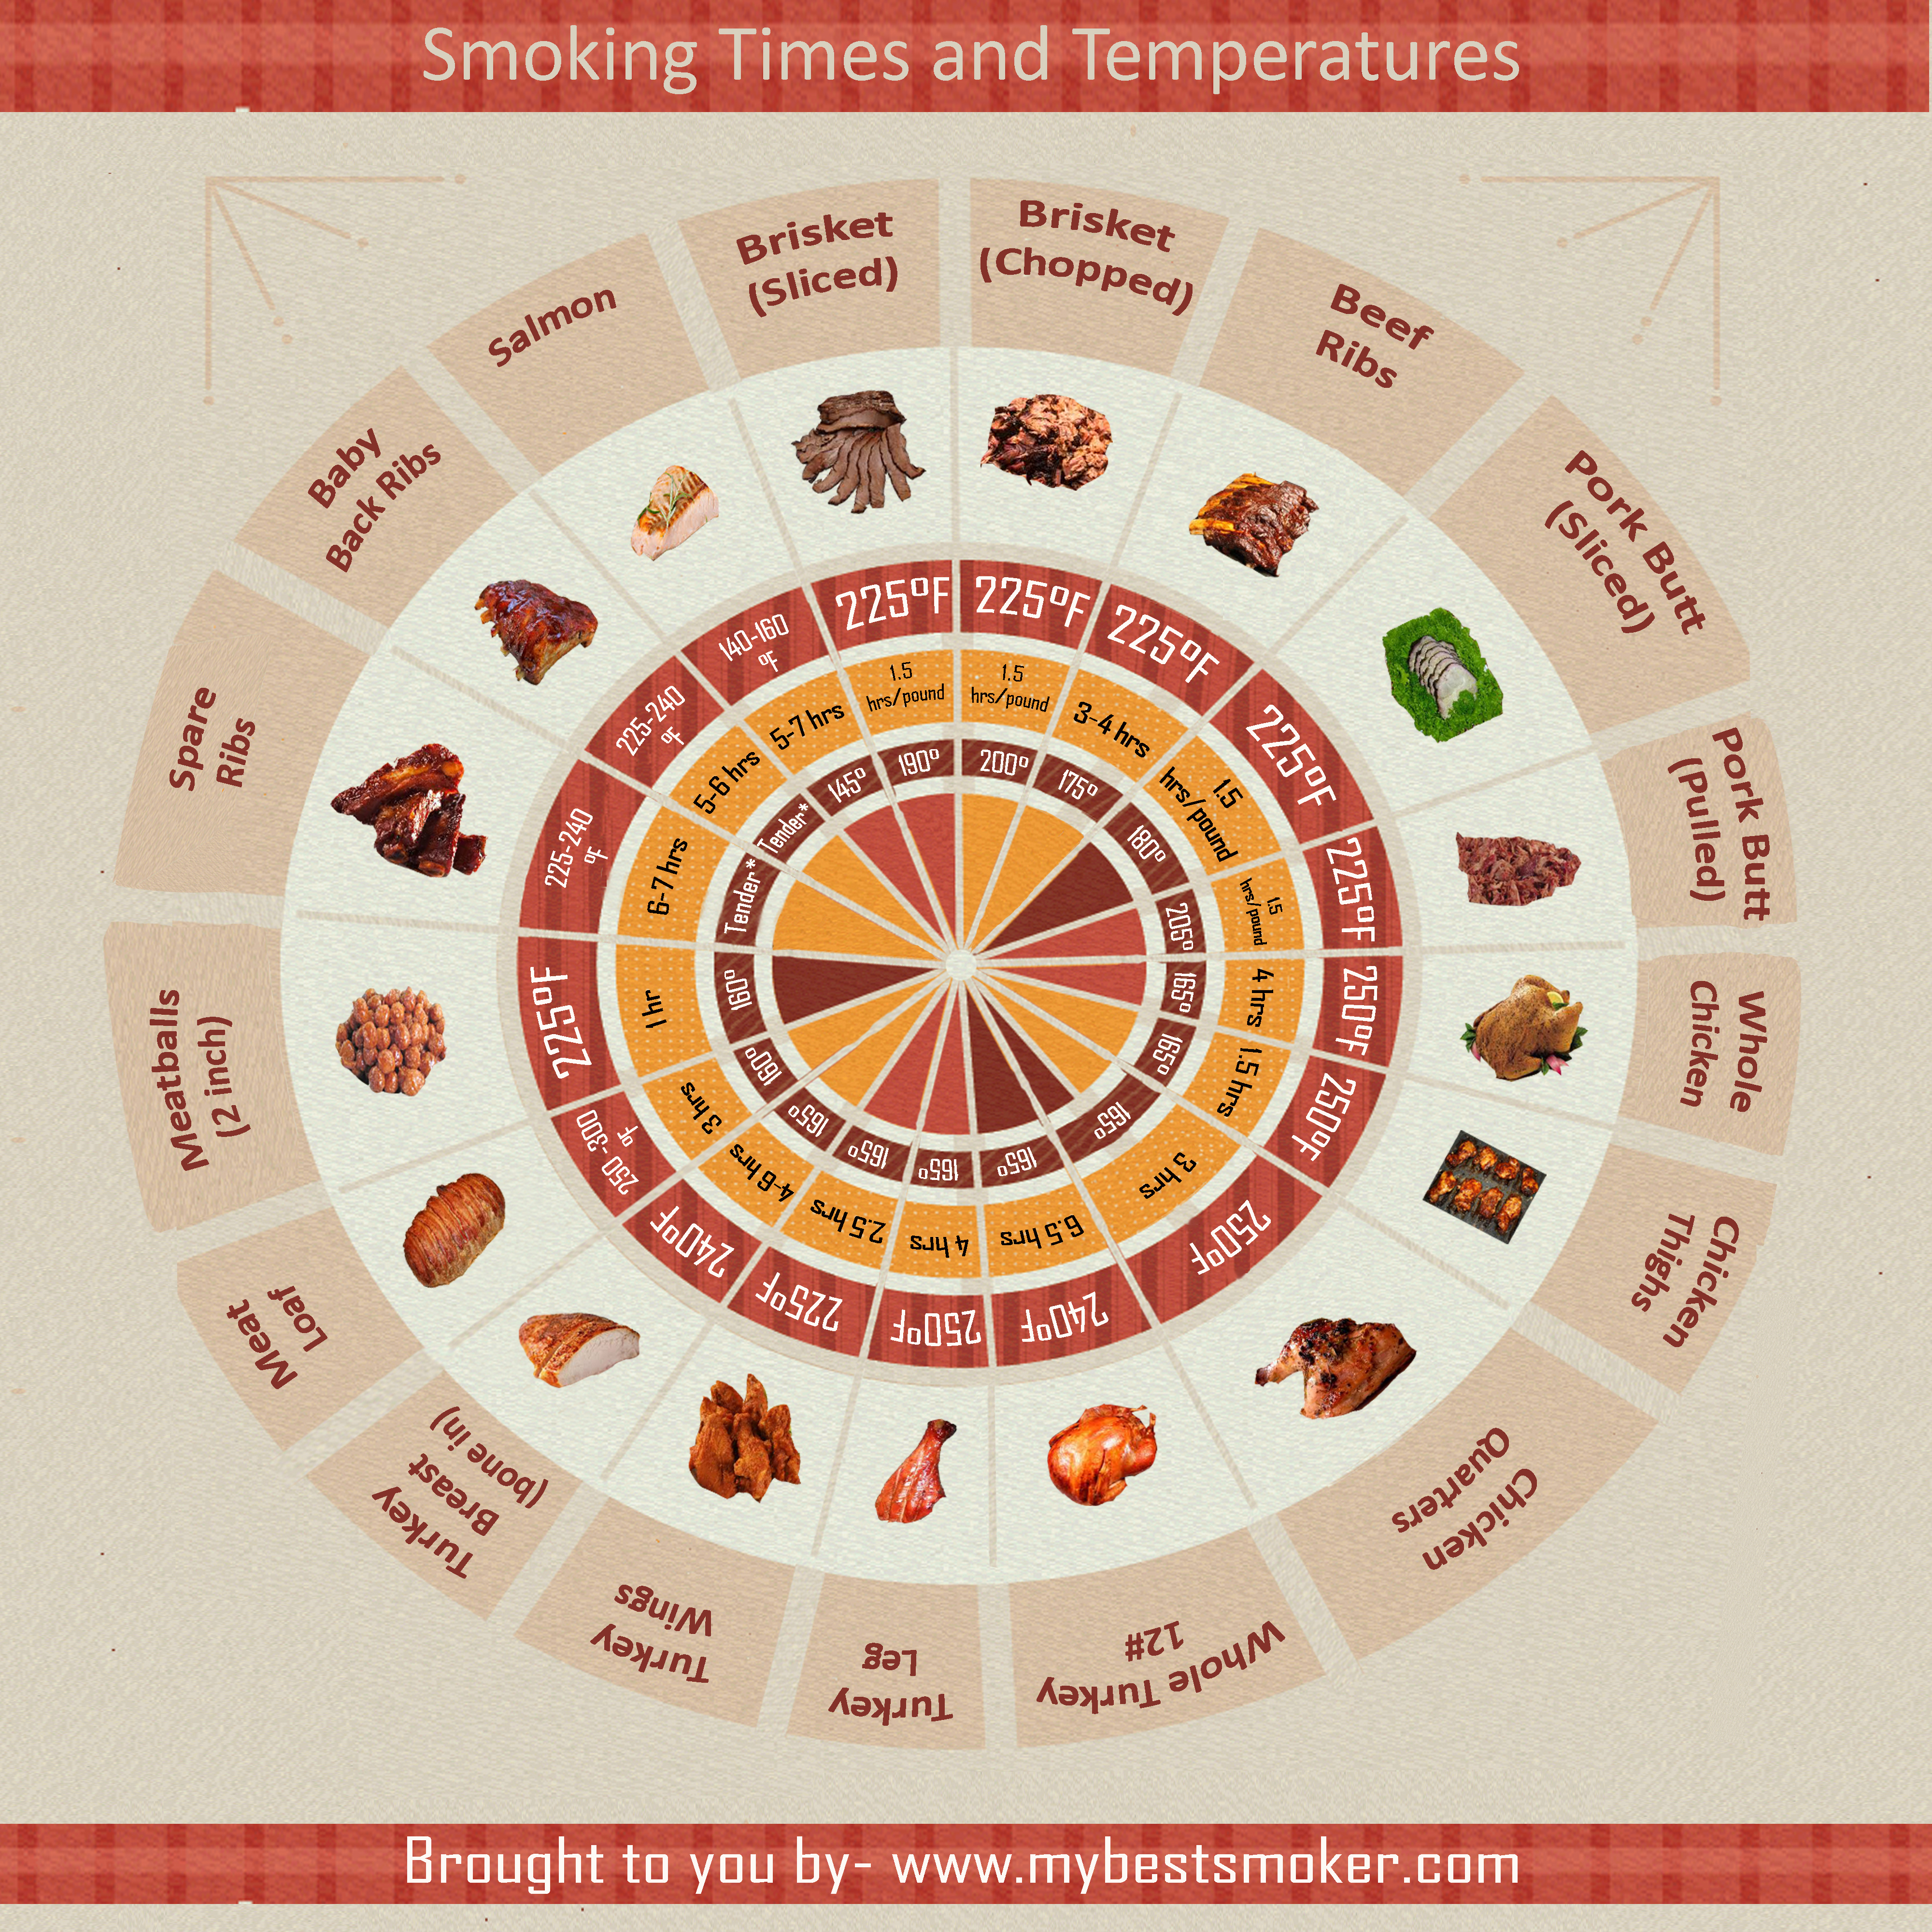 Smoking Times and Temperature